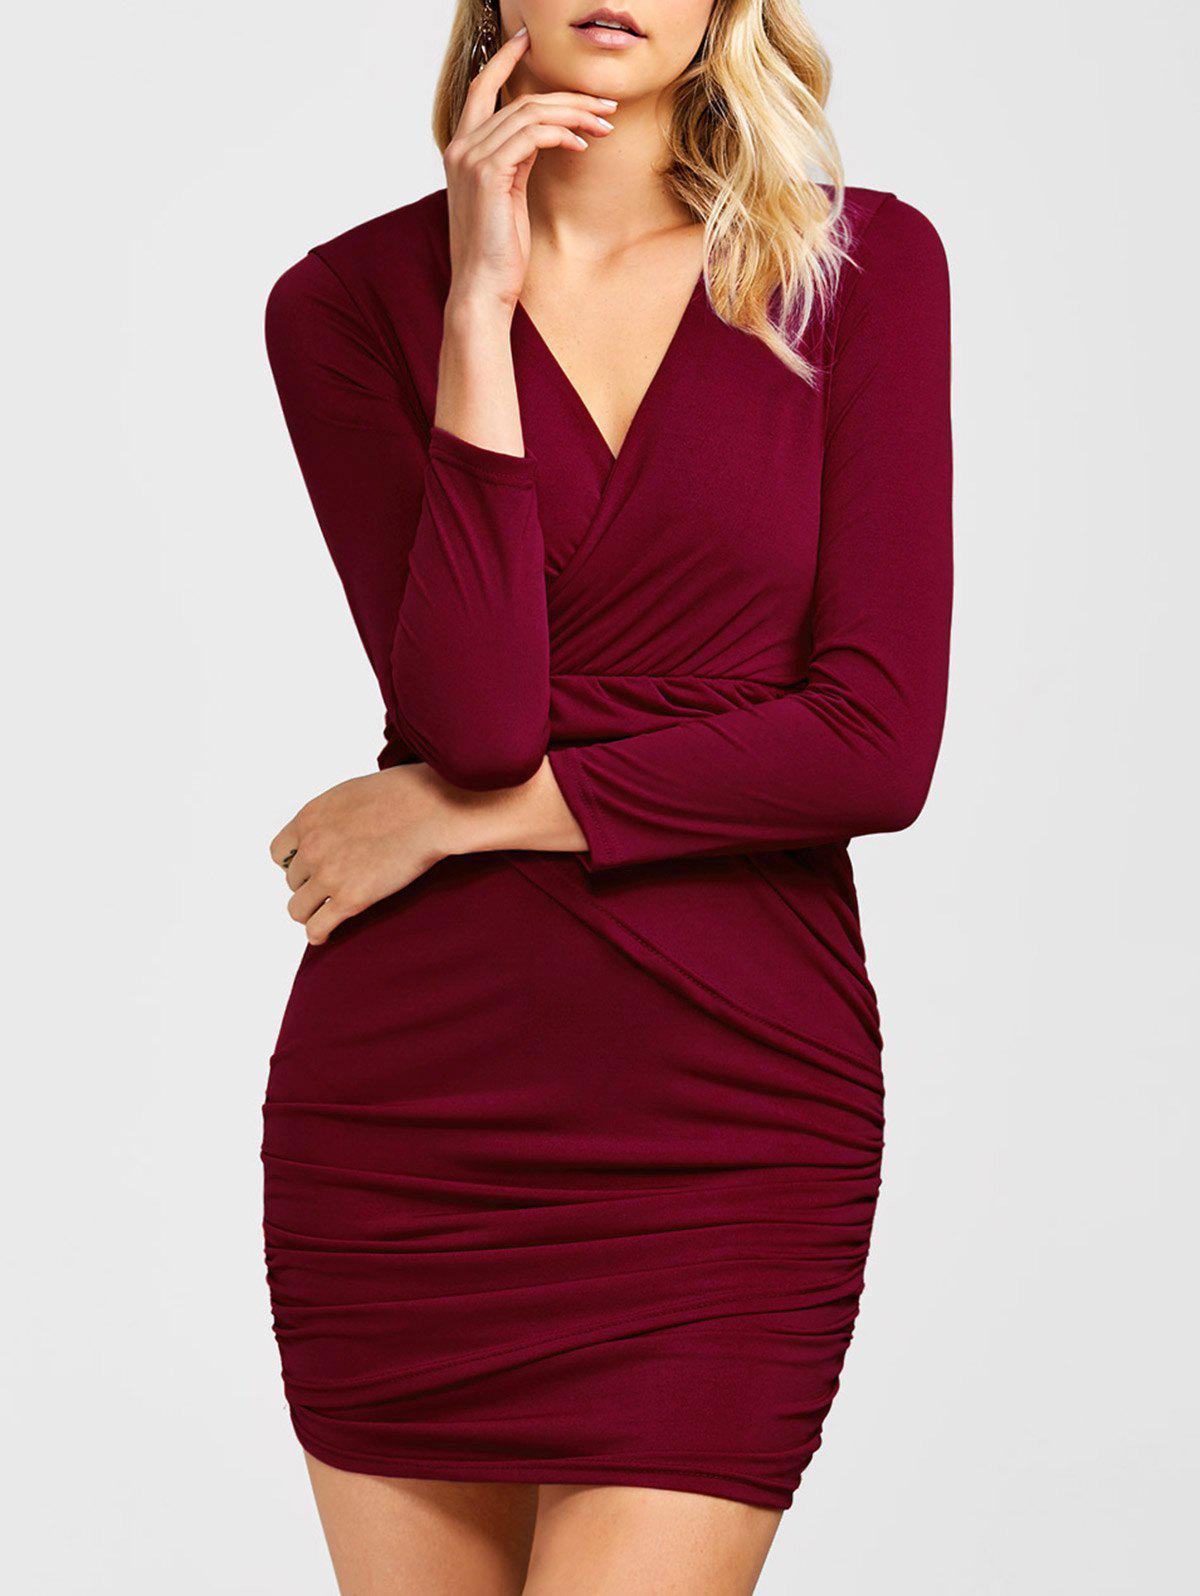 Ruched Surplice Long Sleeve V Neck Mini Party Bodycon Dress scrunch ruched surplice t shirt